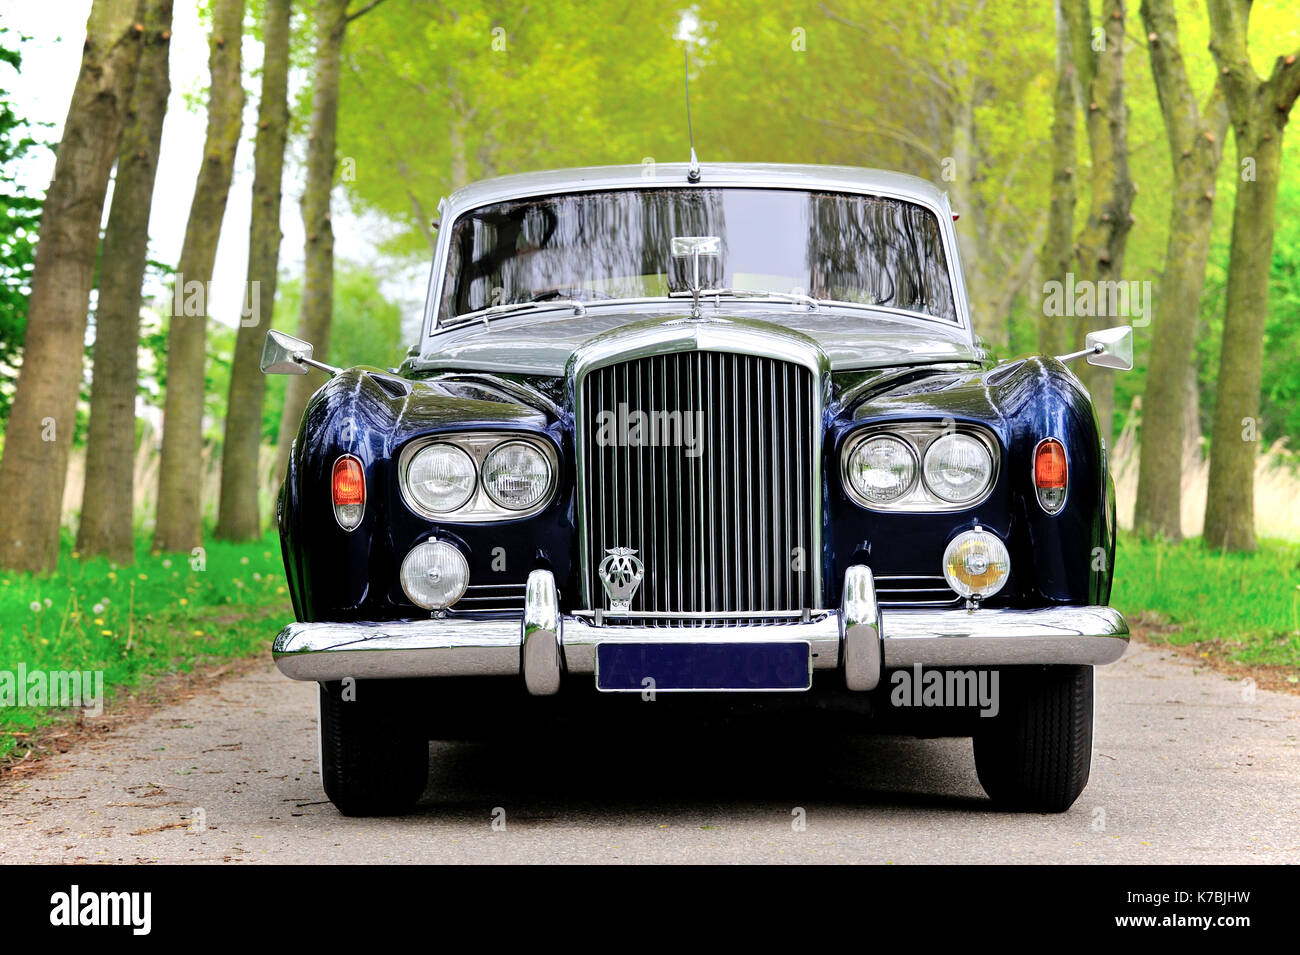 Roys rolls stock photos roys rolls stock images alamy for Rolls royce motor cars